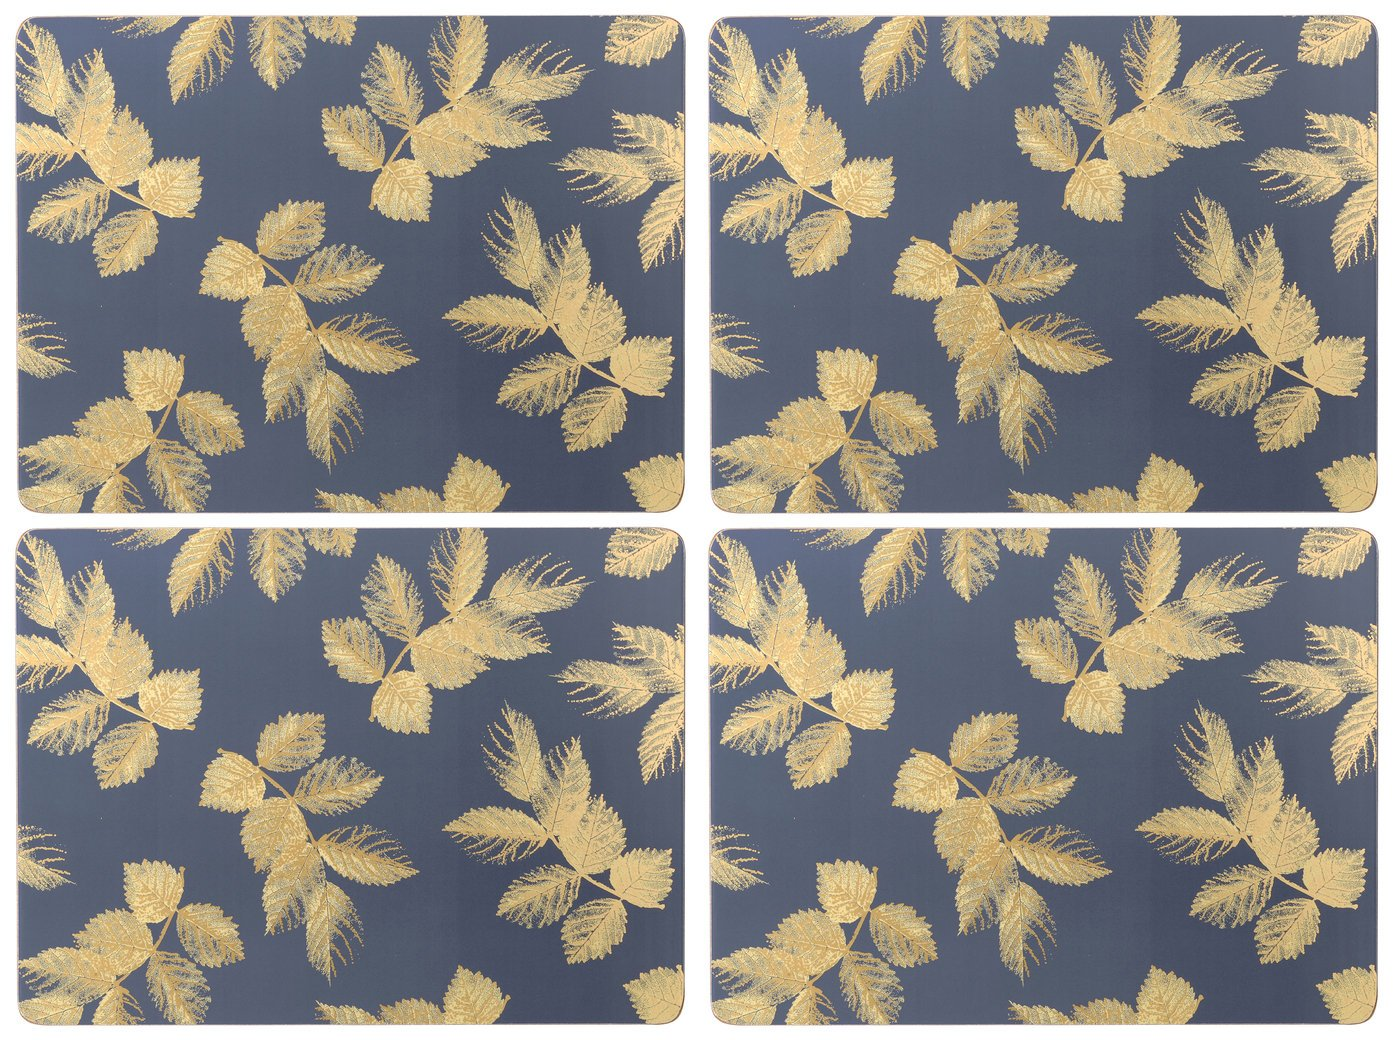 Sara Miller for Portmeirion Etched Leaves Leaves Leaves Tischunterlage 4 Stück - Navy (s) B0719SCPWH Platzsets 05a538